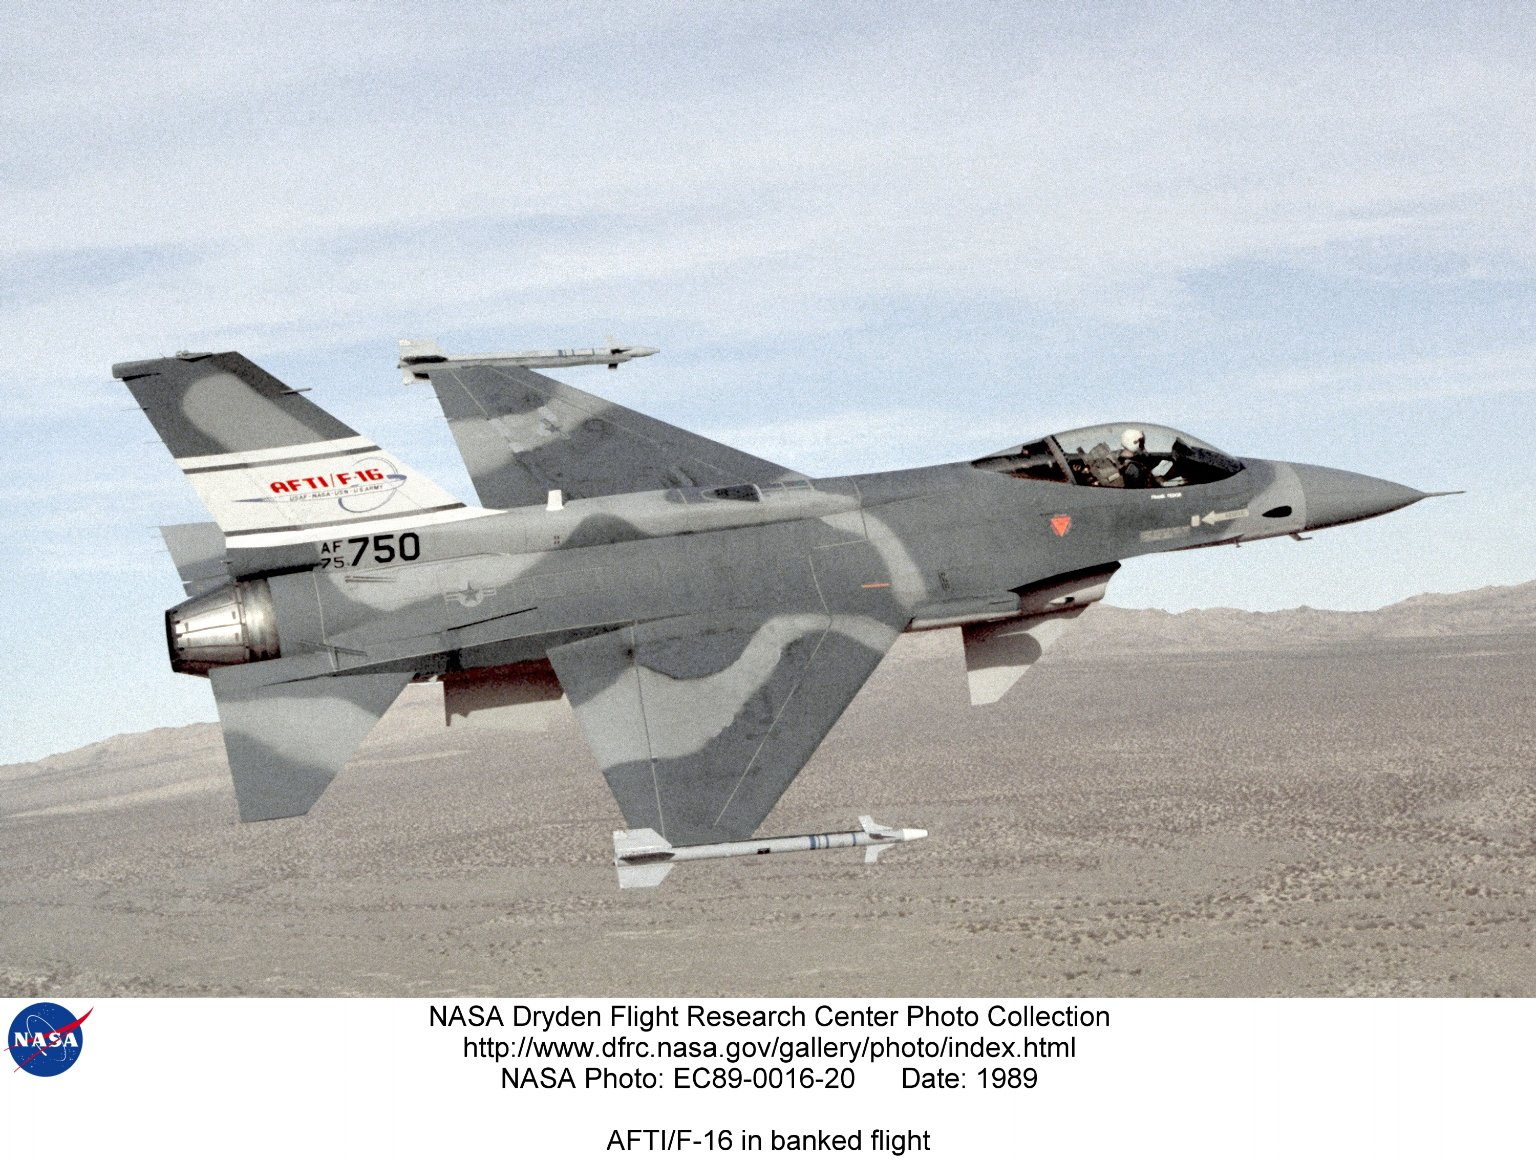 AFTI/F-16 in banked flight